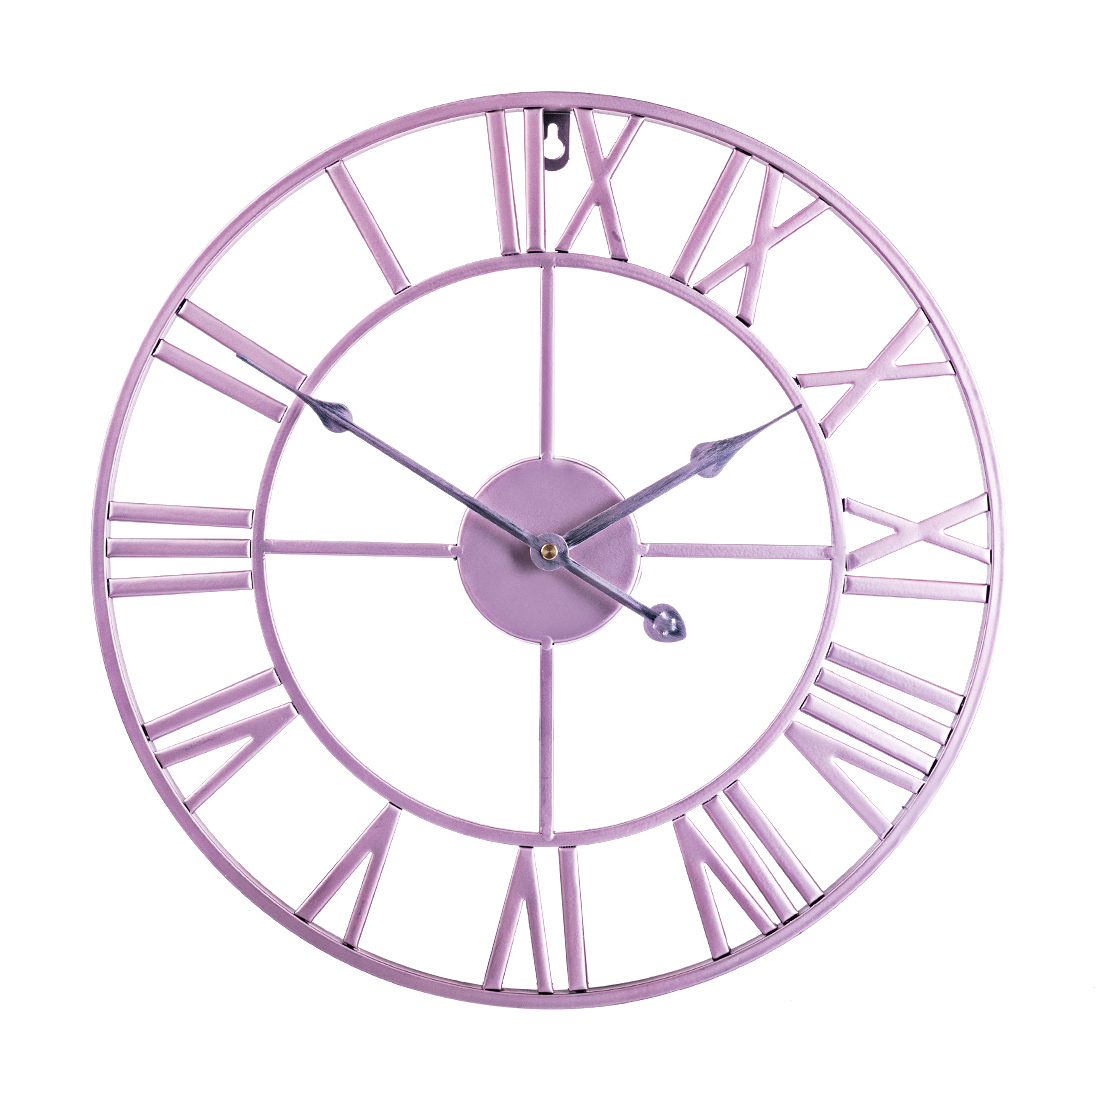 New 40cm Nordic Retro Round Iron Art Hanging Clock Three With Regard To Well Liked Nordic Three Dimensional Iron Wall Art (View 13 of 20)